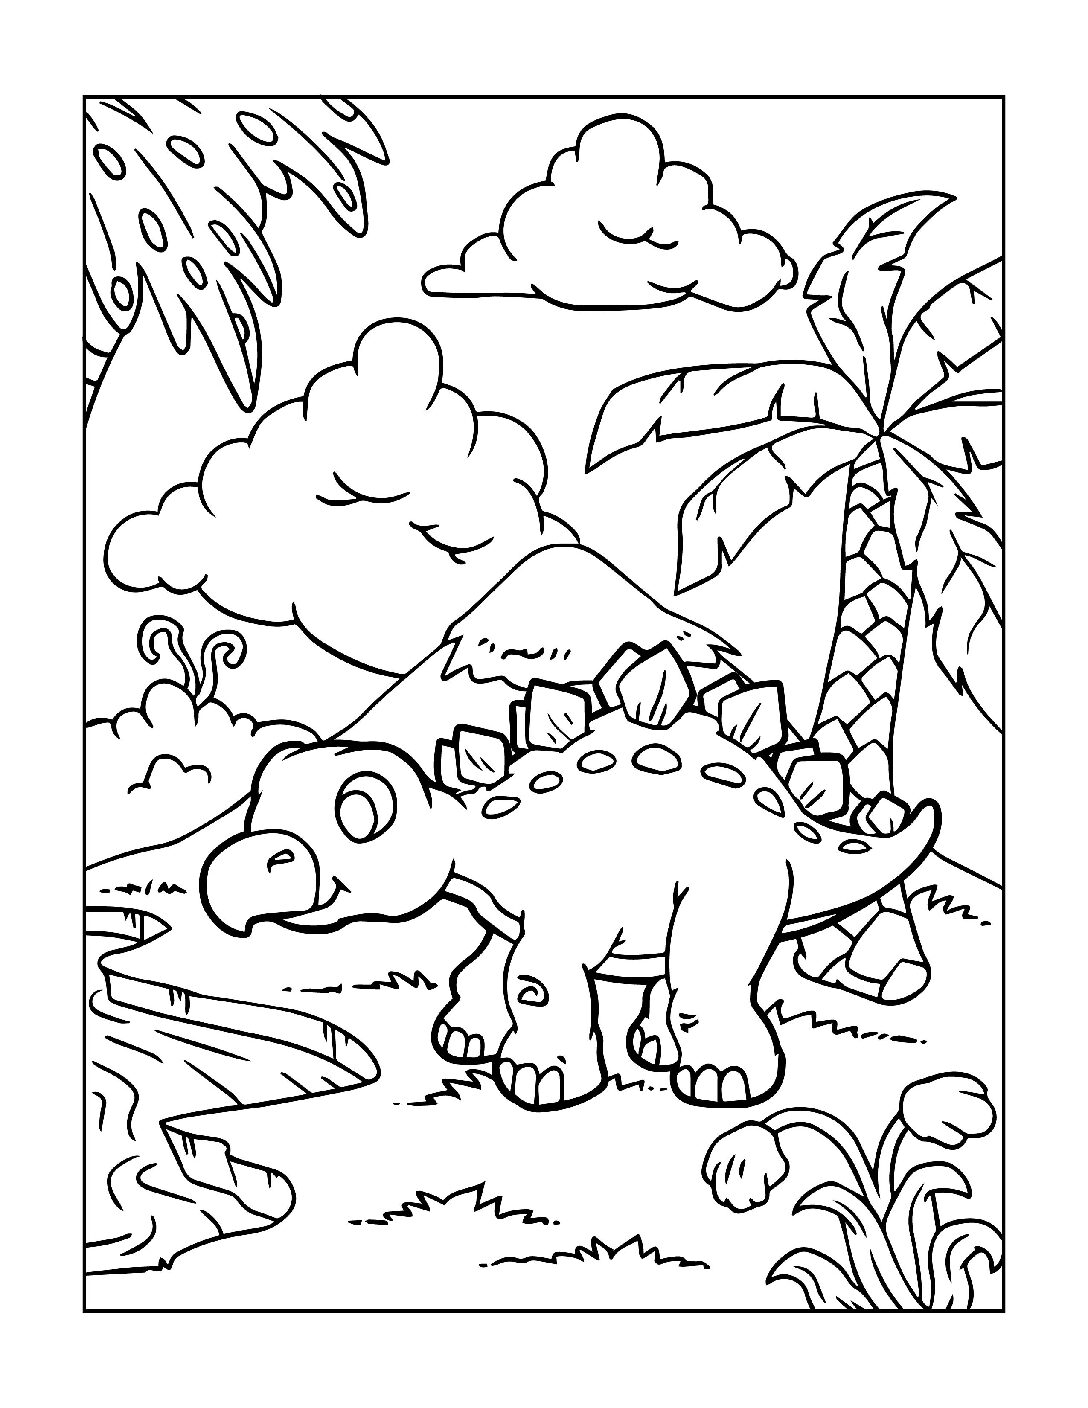 Coloring-Pages-Dinosaur-7-pdf Free Printable Dinasour Colouring Pages